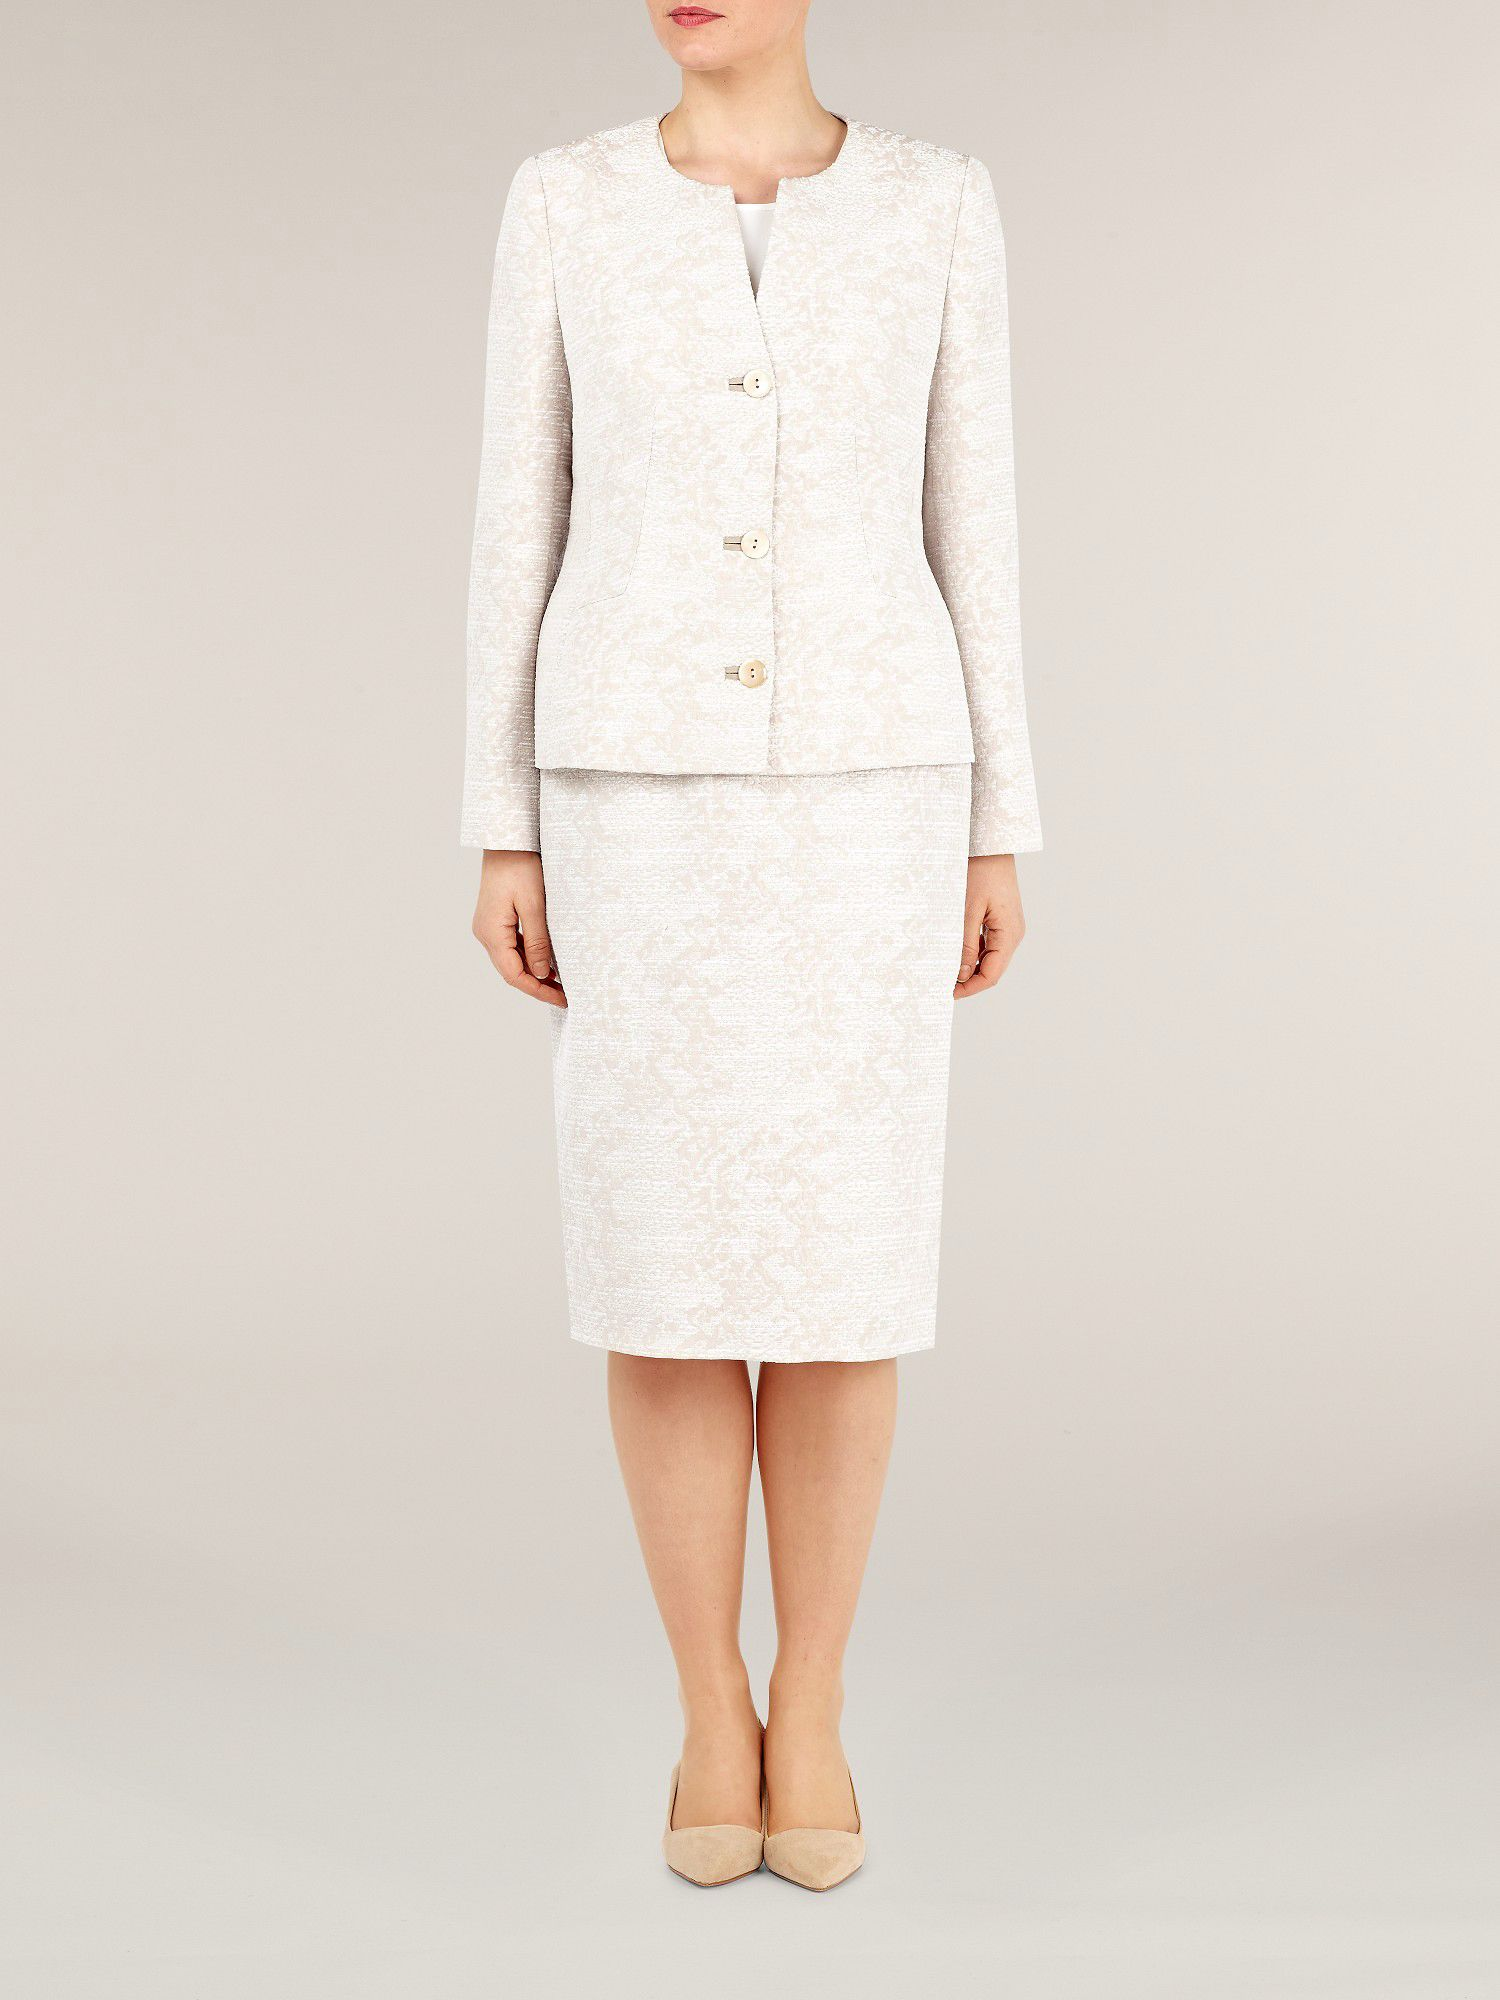 Cream jacquard textured jacket